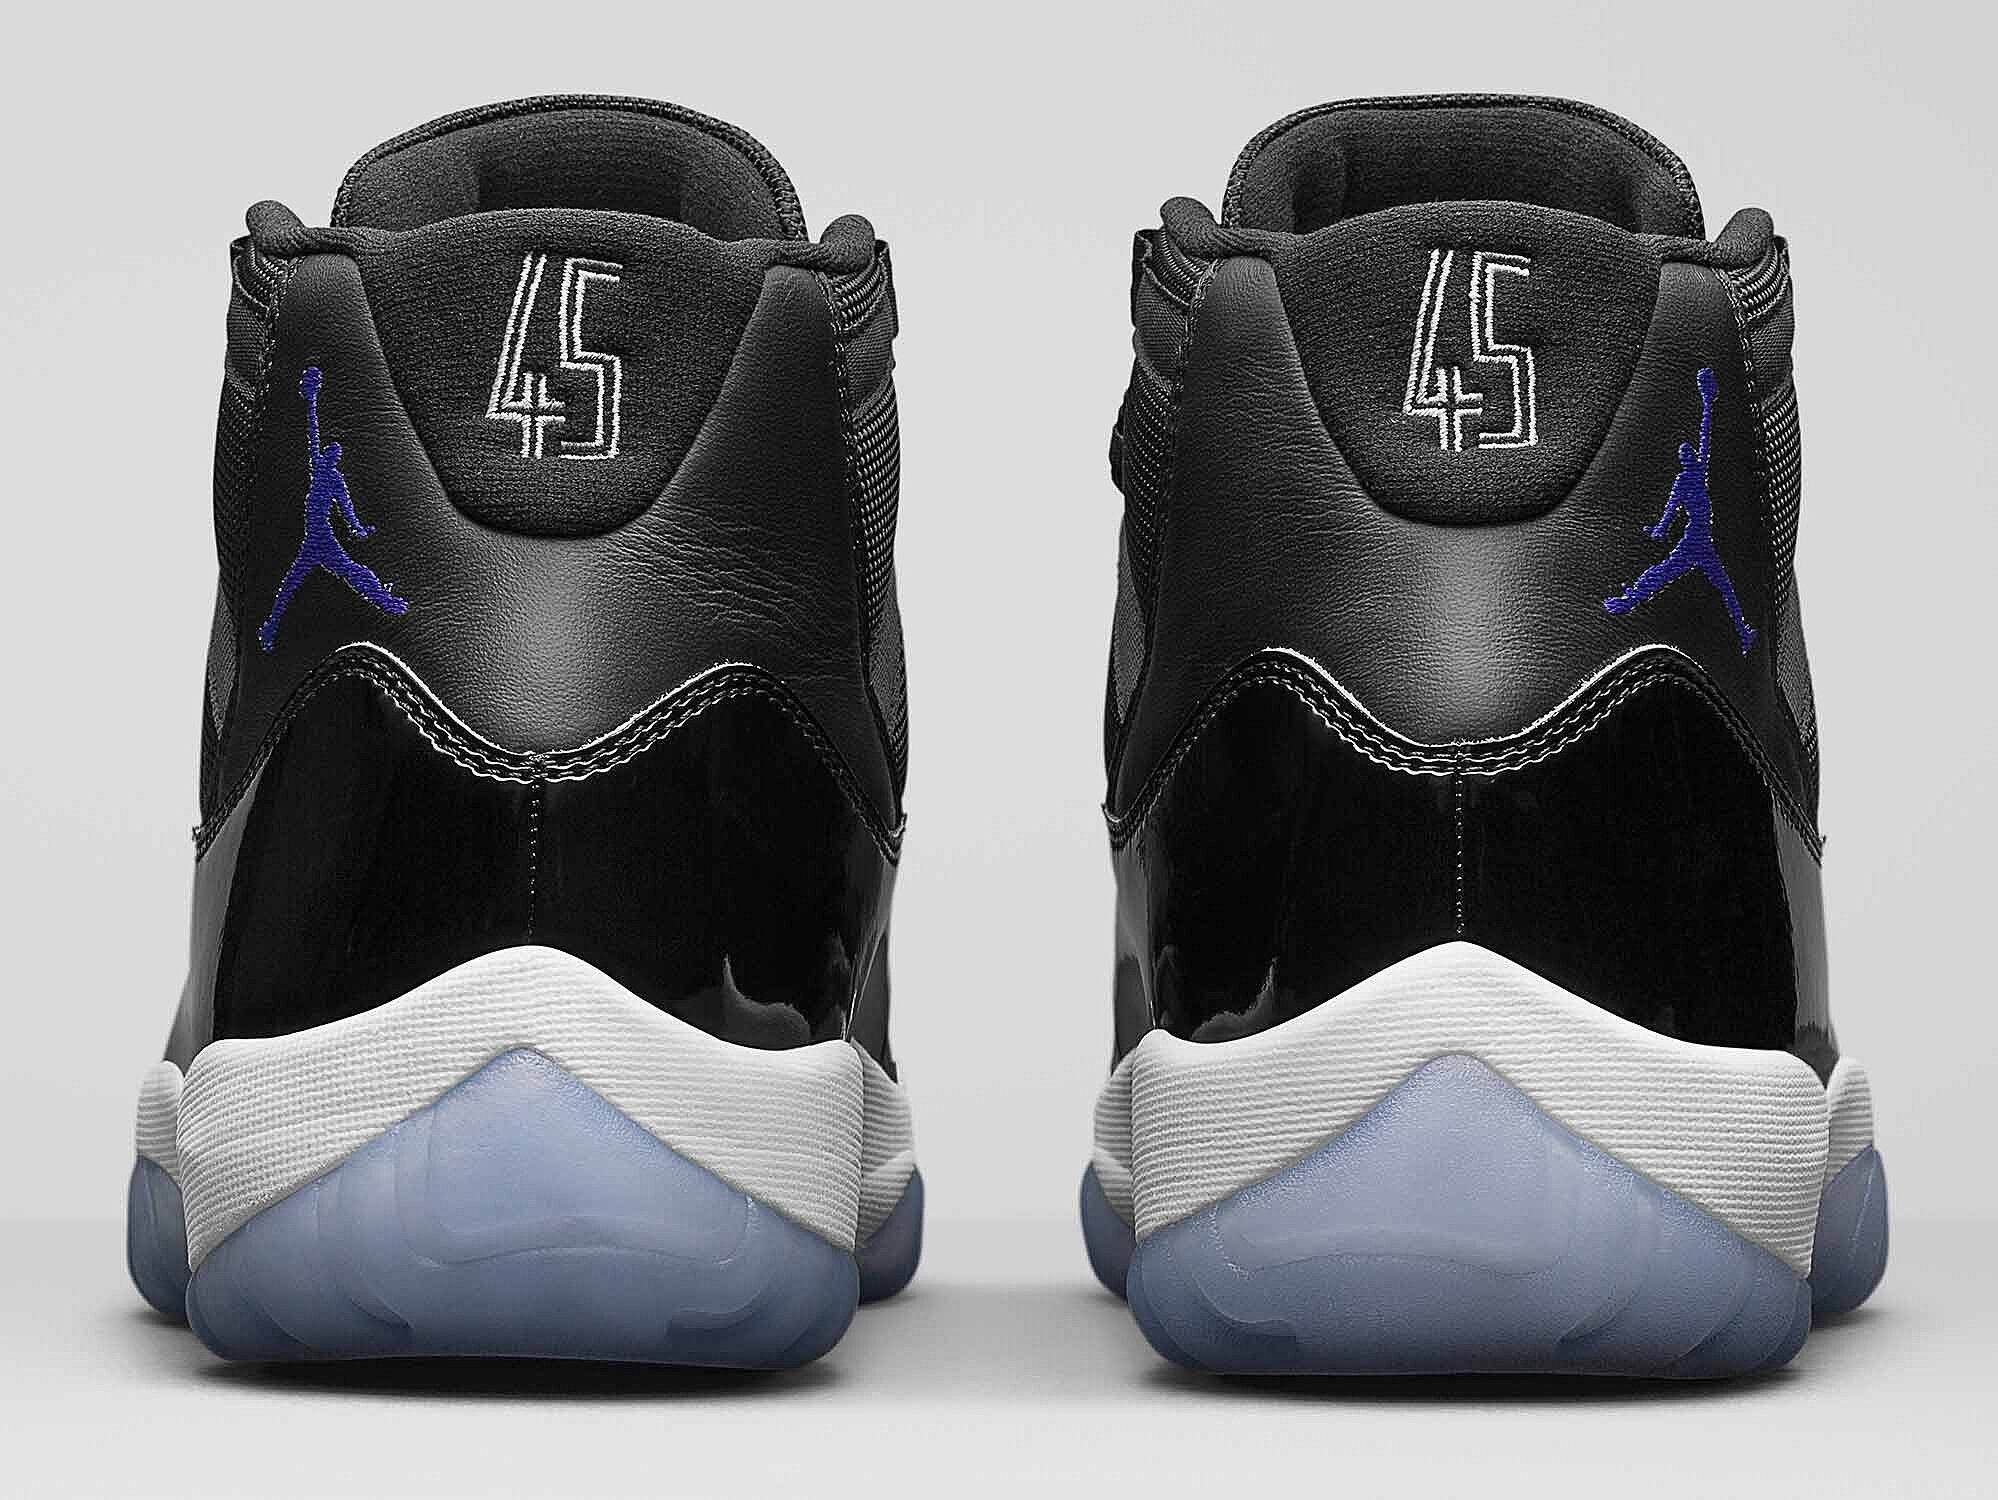 7feba4e56a04 Space Jam  Inside Jordan Brand s Big Bet